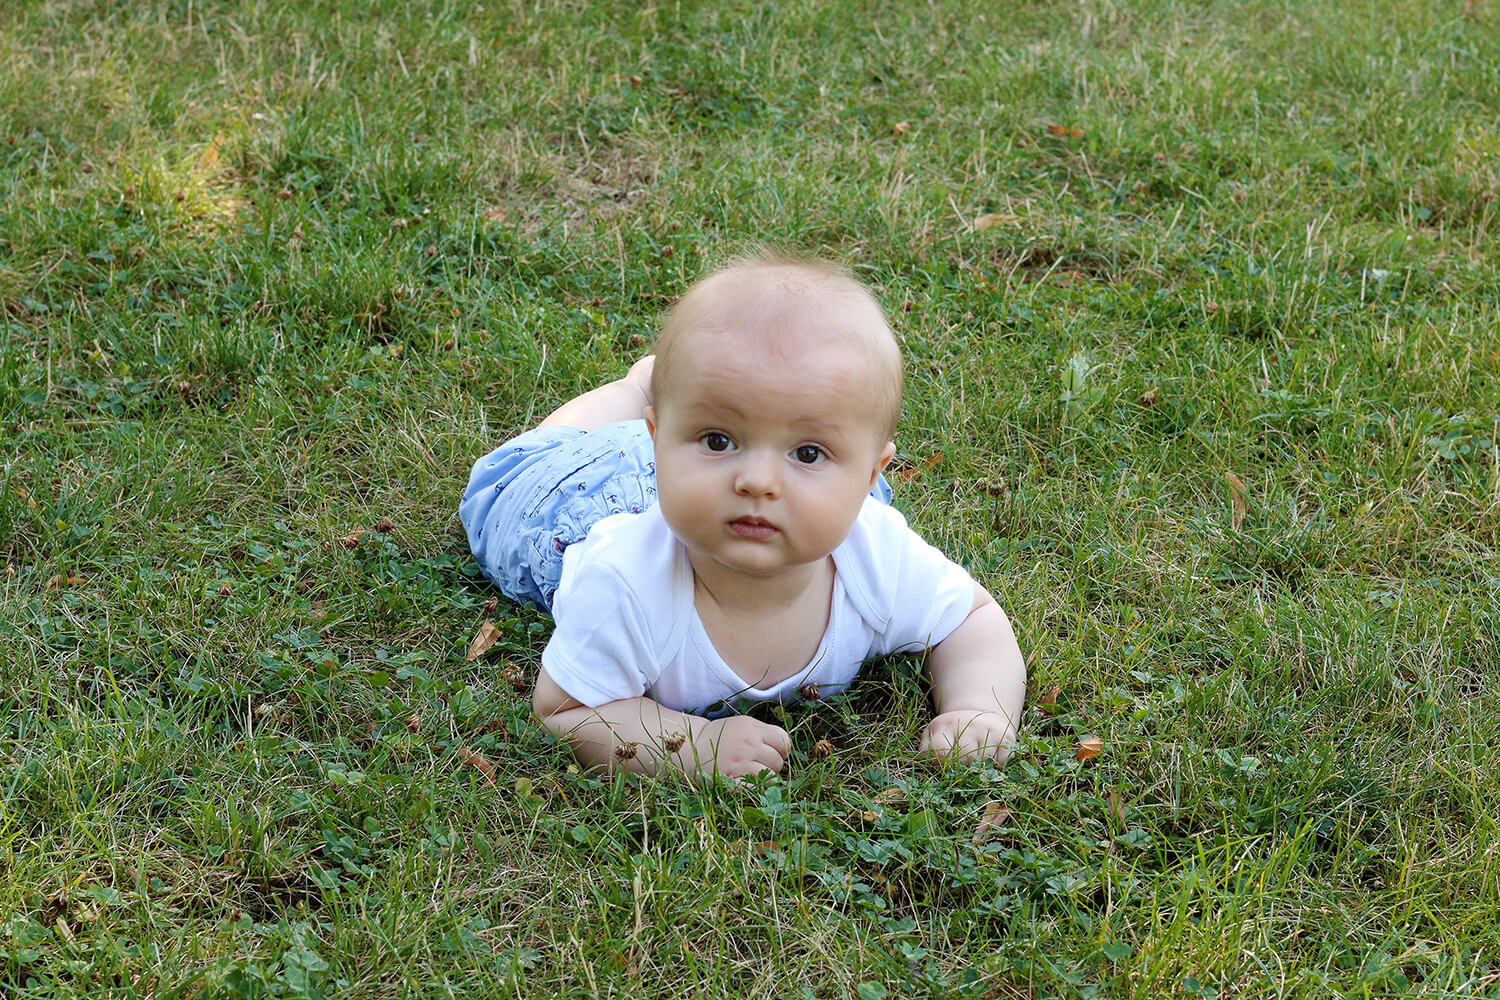 family photo of a toddler on the grass